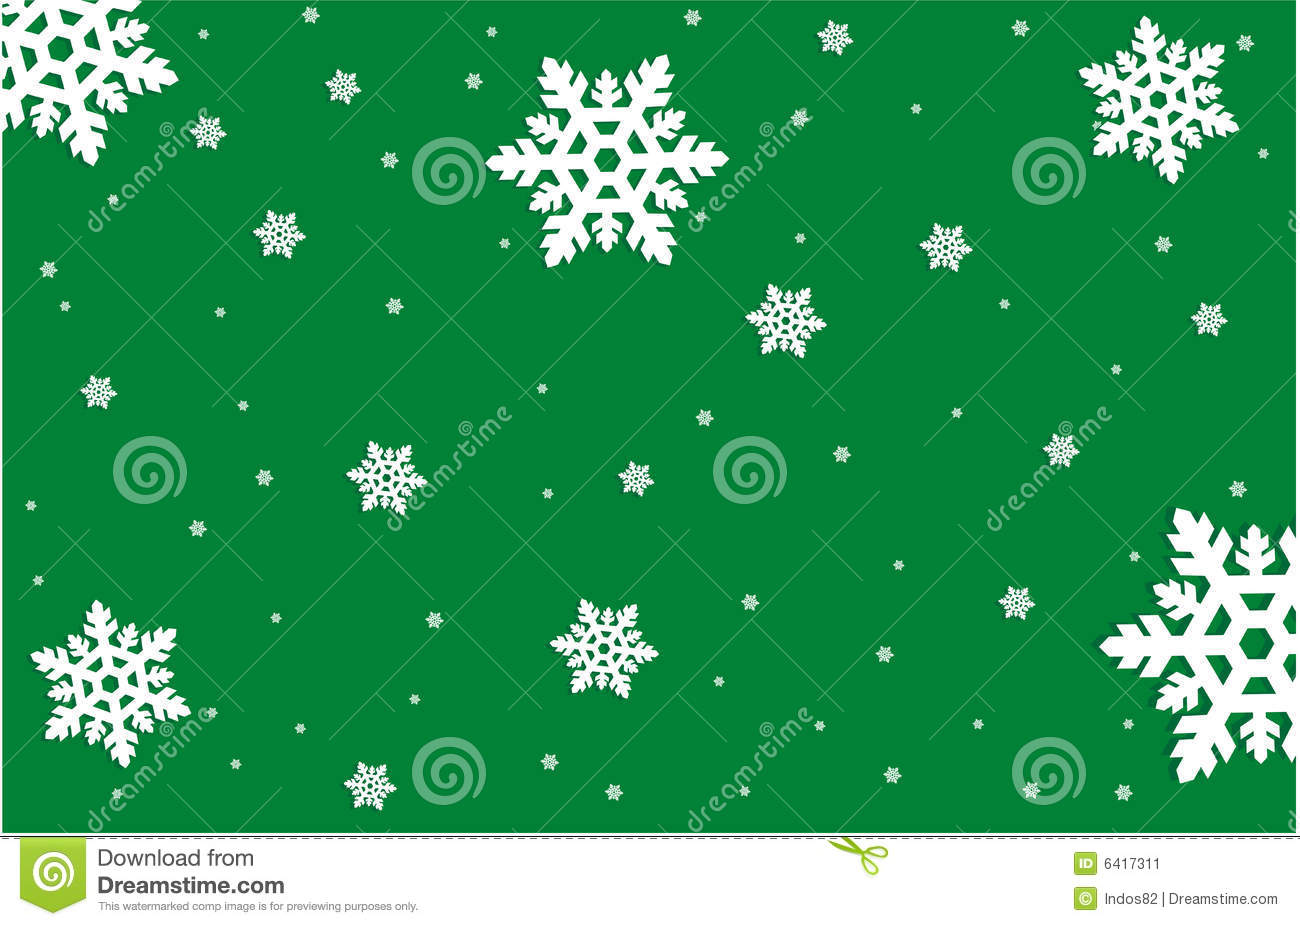 Snowflakes On Green Background Stock Image - Image: 6417311